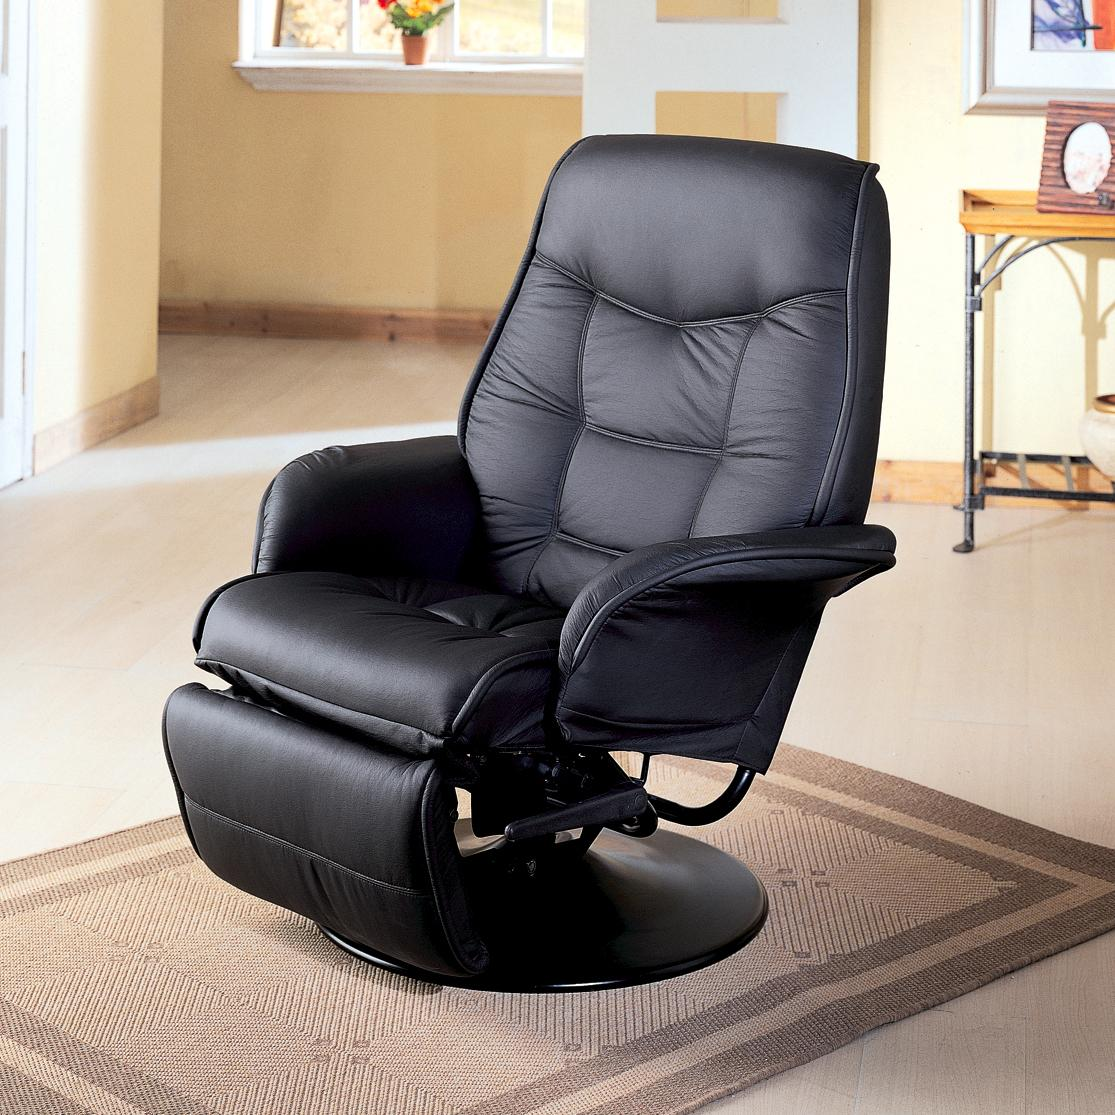 Image of: leather swivel recliner chairs